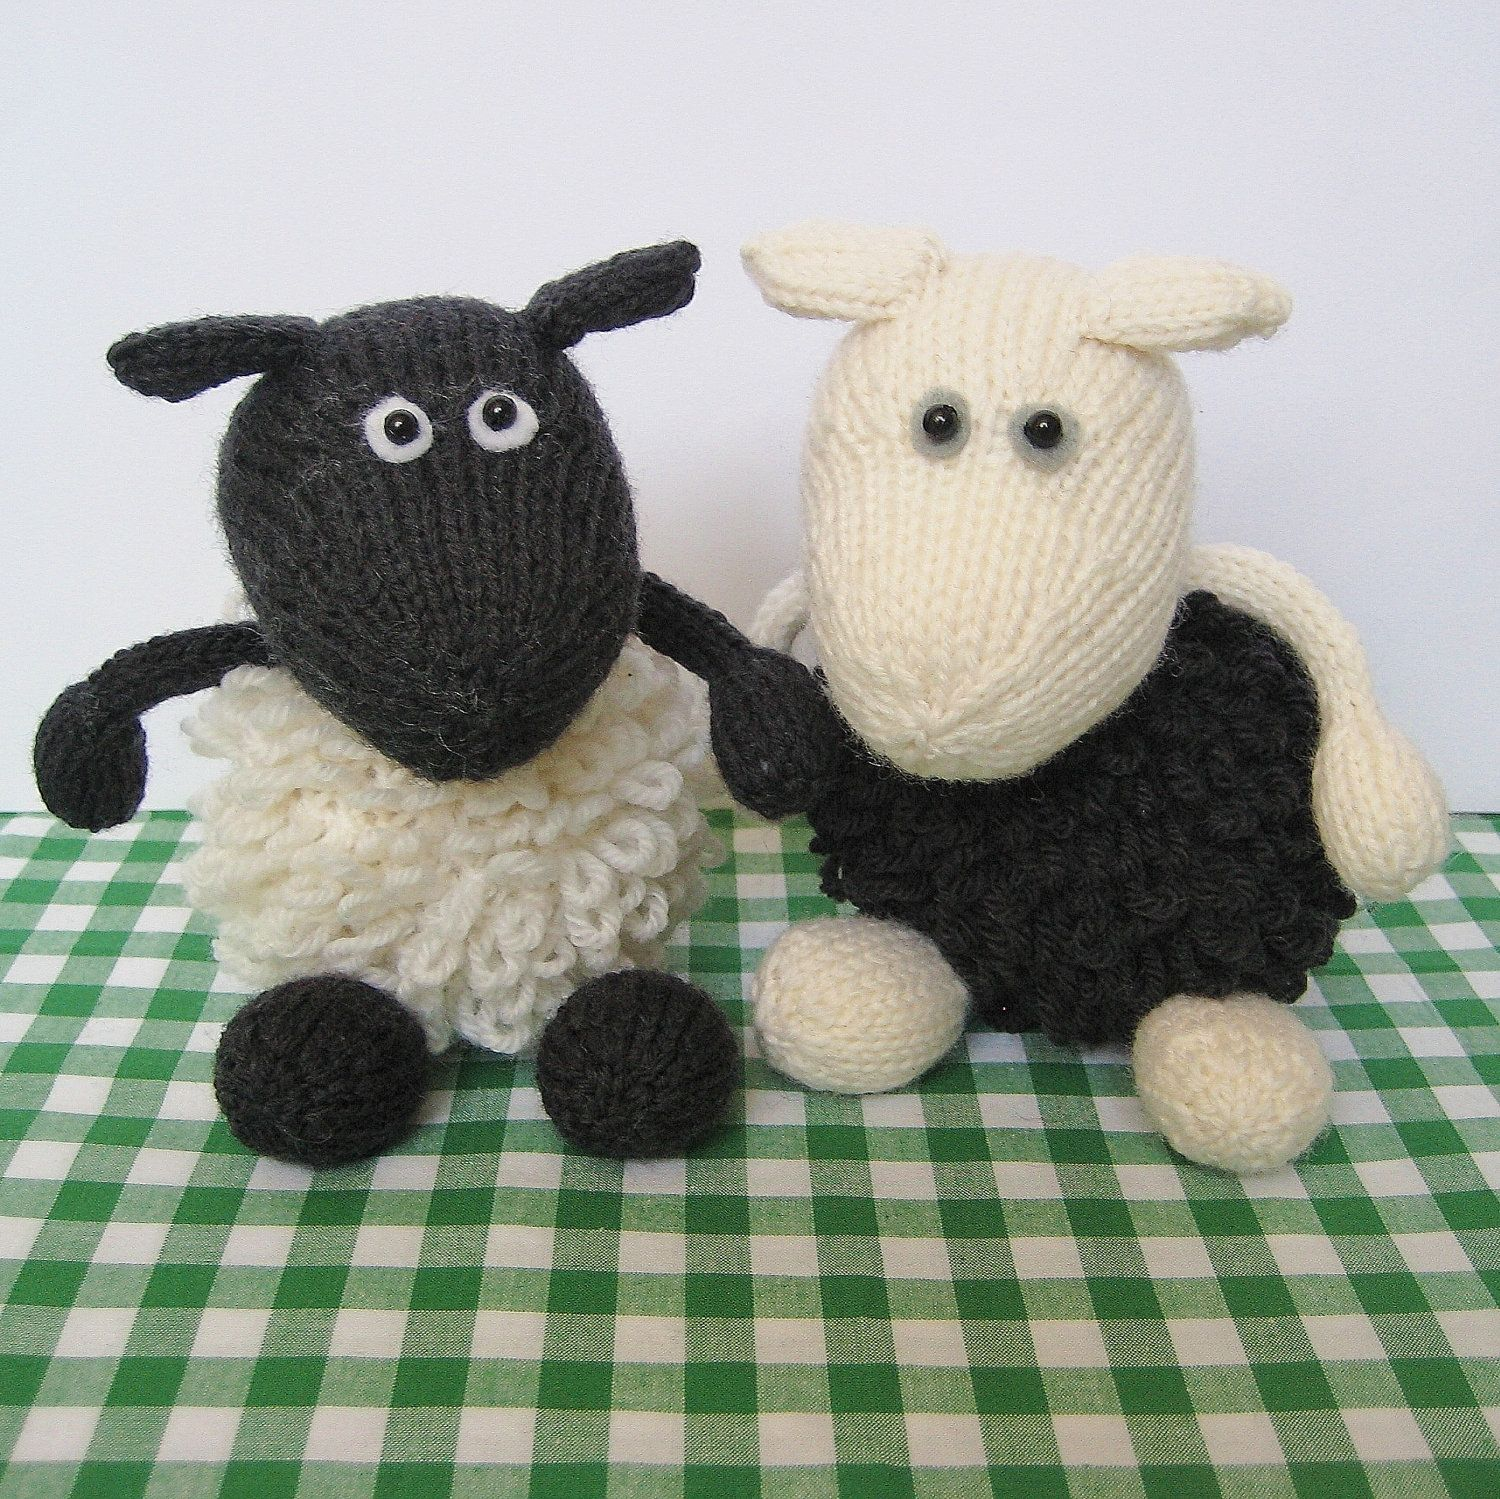 Loopy the sheep 300 church fair pinterest sheep knitting loopy the sheep 300 knitting projectsknitting patternscrochet bankloansurffo Gallery